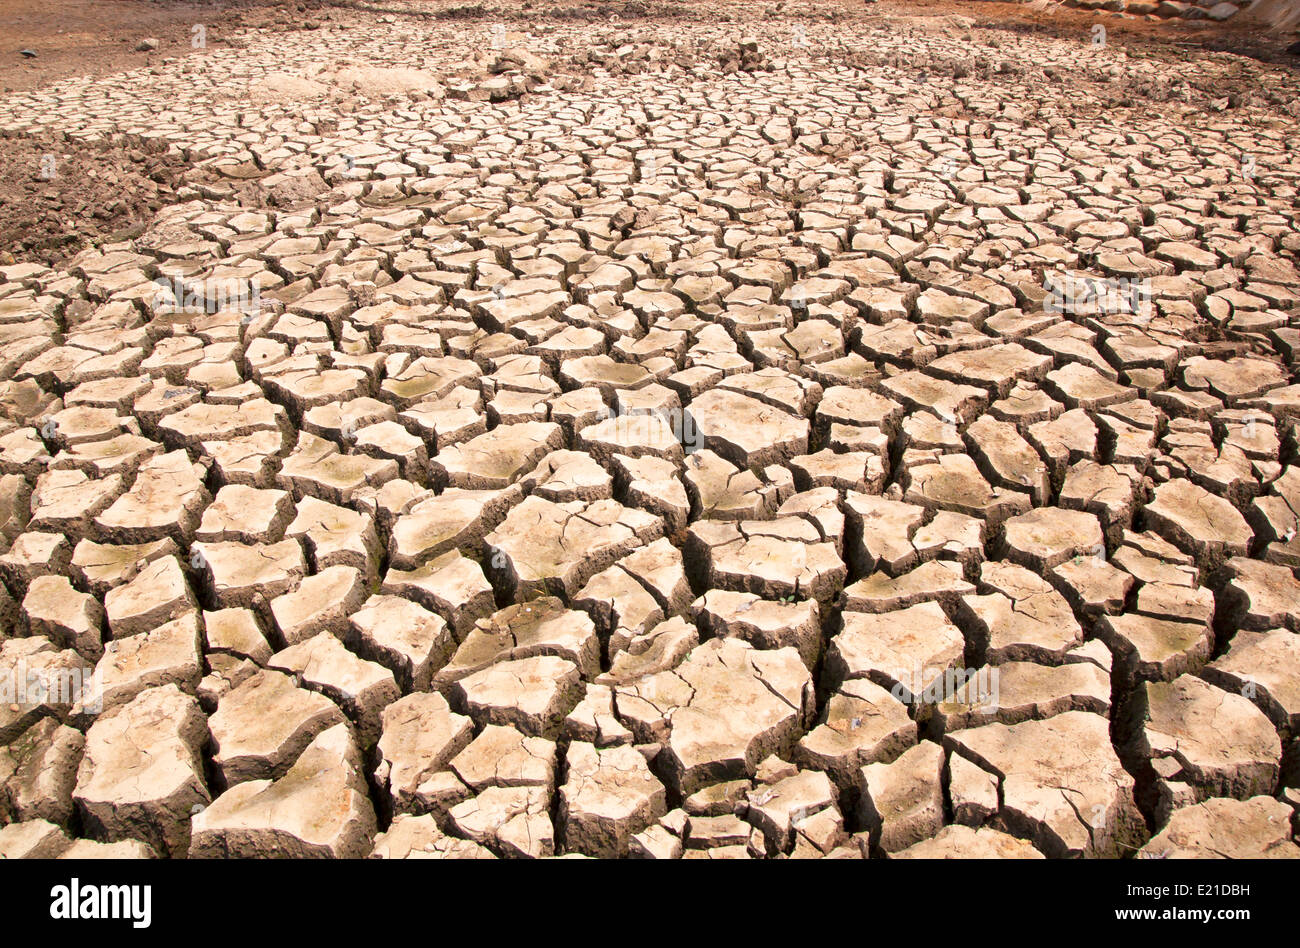 Drought breaks ground fissures of the ground. - Stock Image